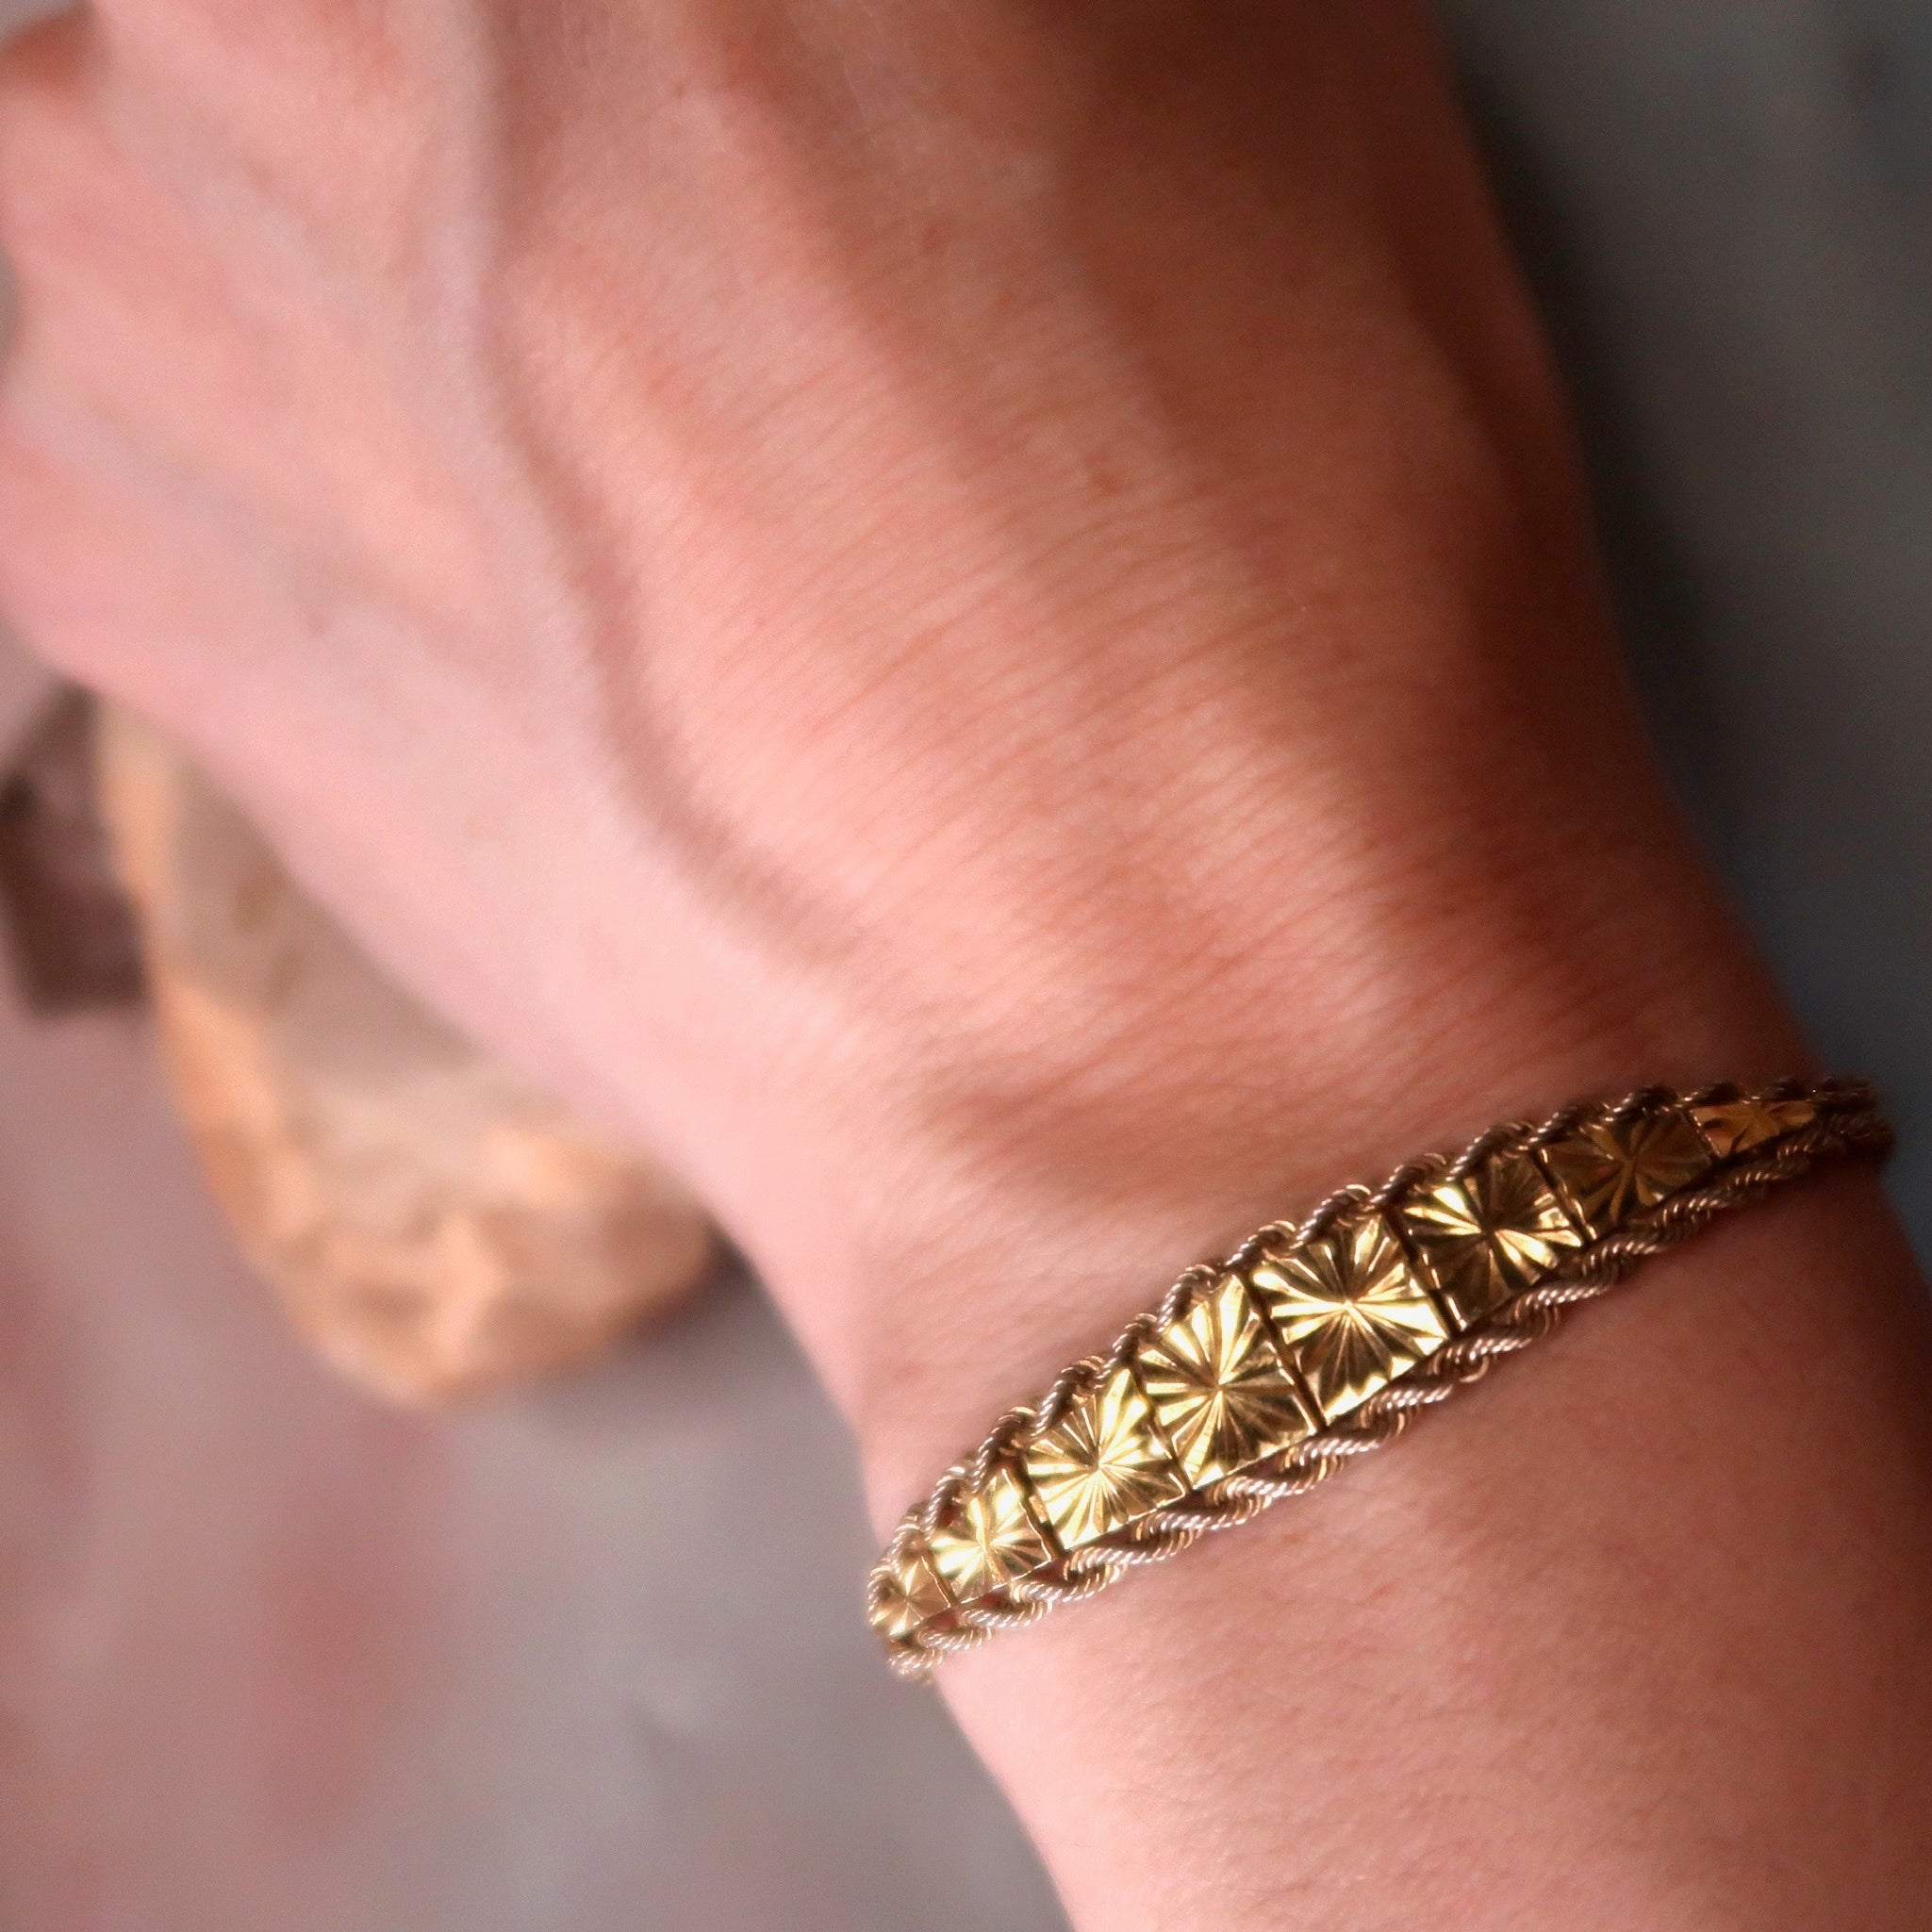 Vintage 14K Gold Filled Bracelet - Everyday in Retrograde